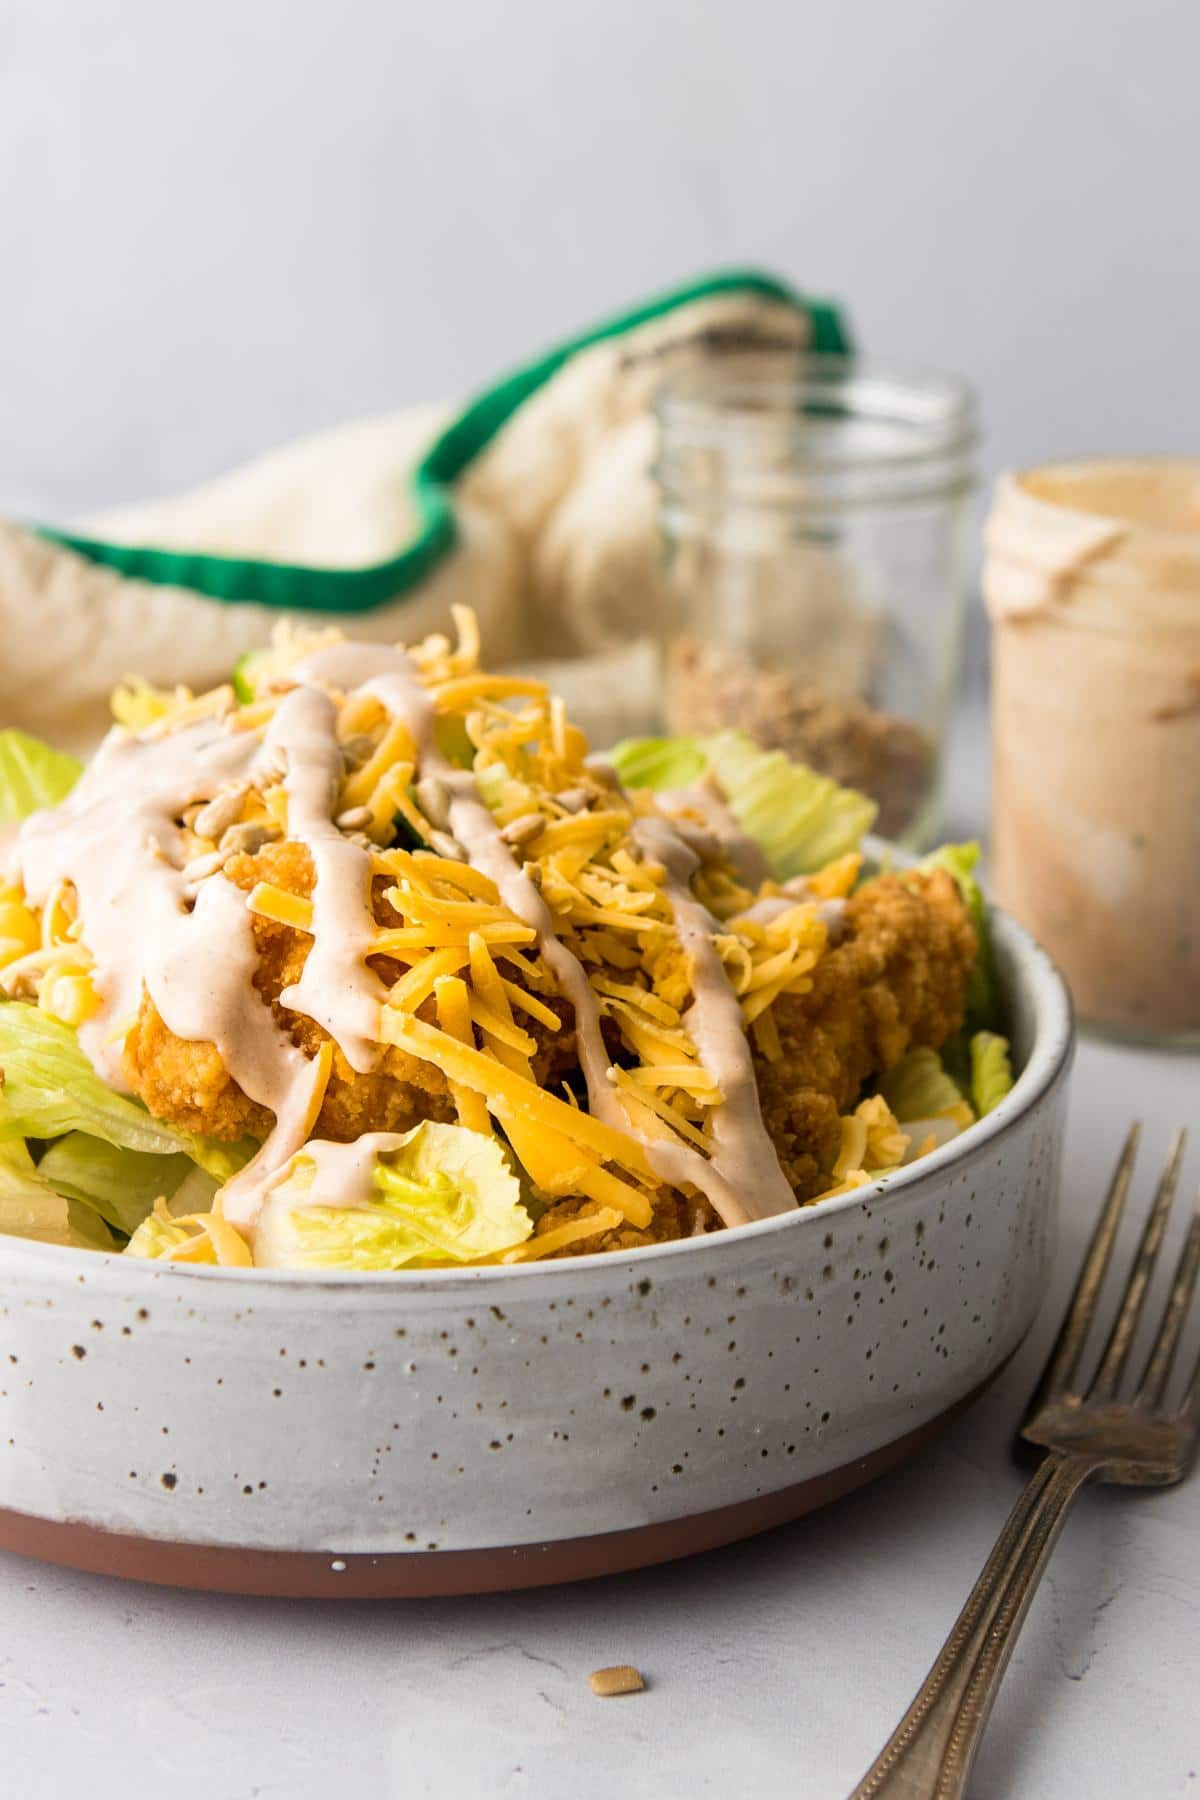 chicken, shredded cheese, and vegetable salad in a grey bowl